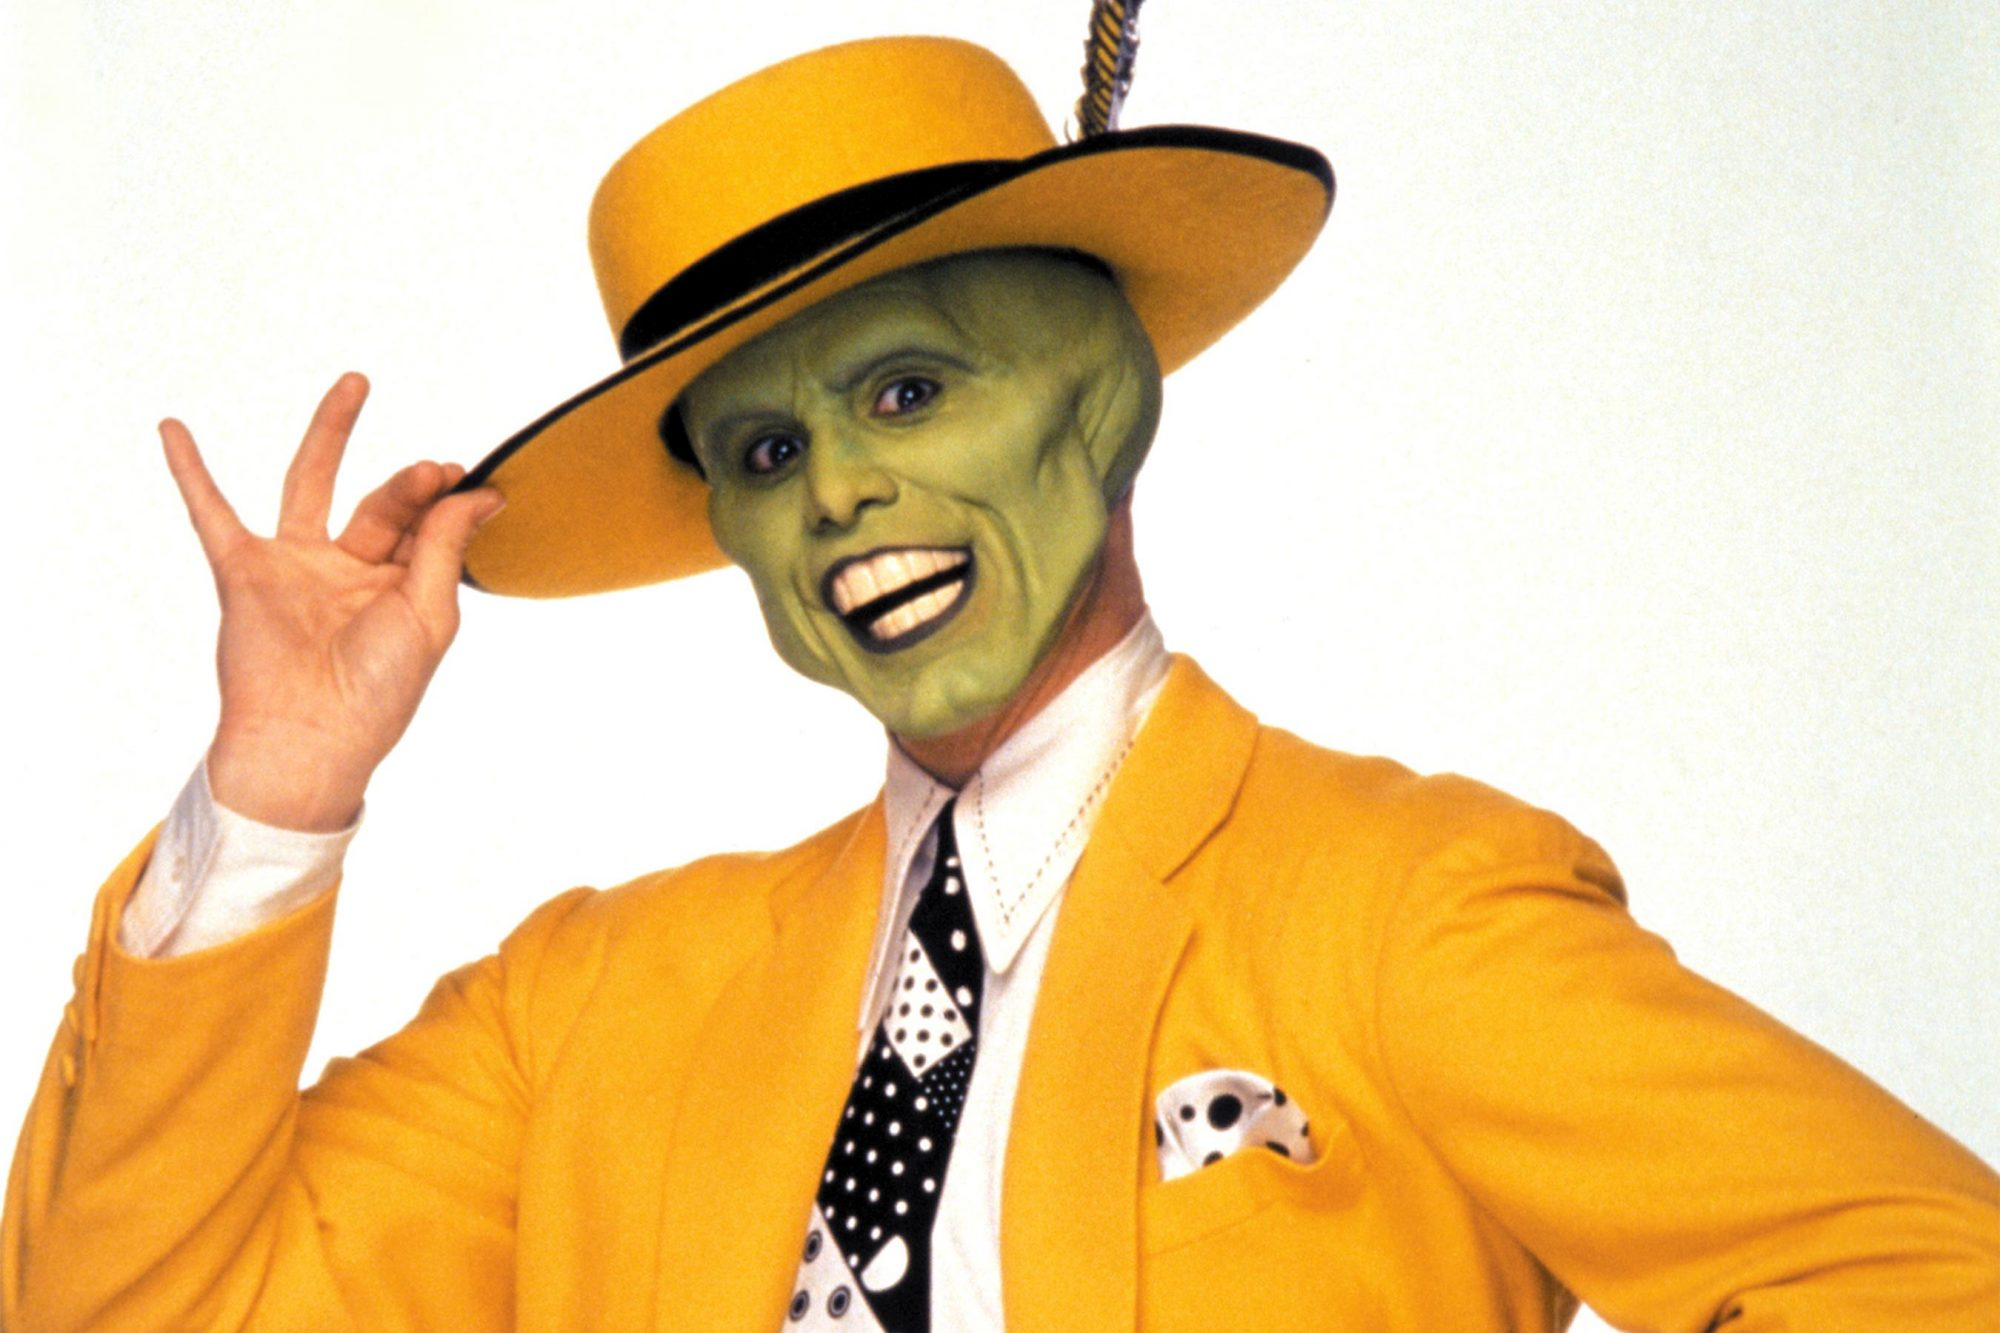 THE MASK, Jim Carrey, 1994. (c) New Line Cinema/ Courtesy: Everett Collection.